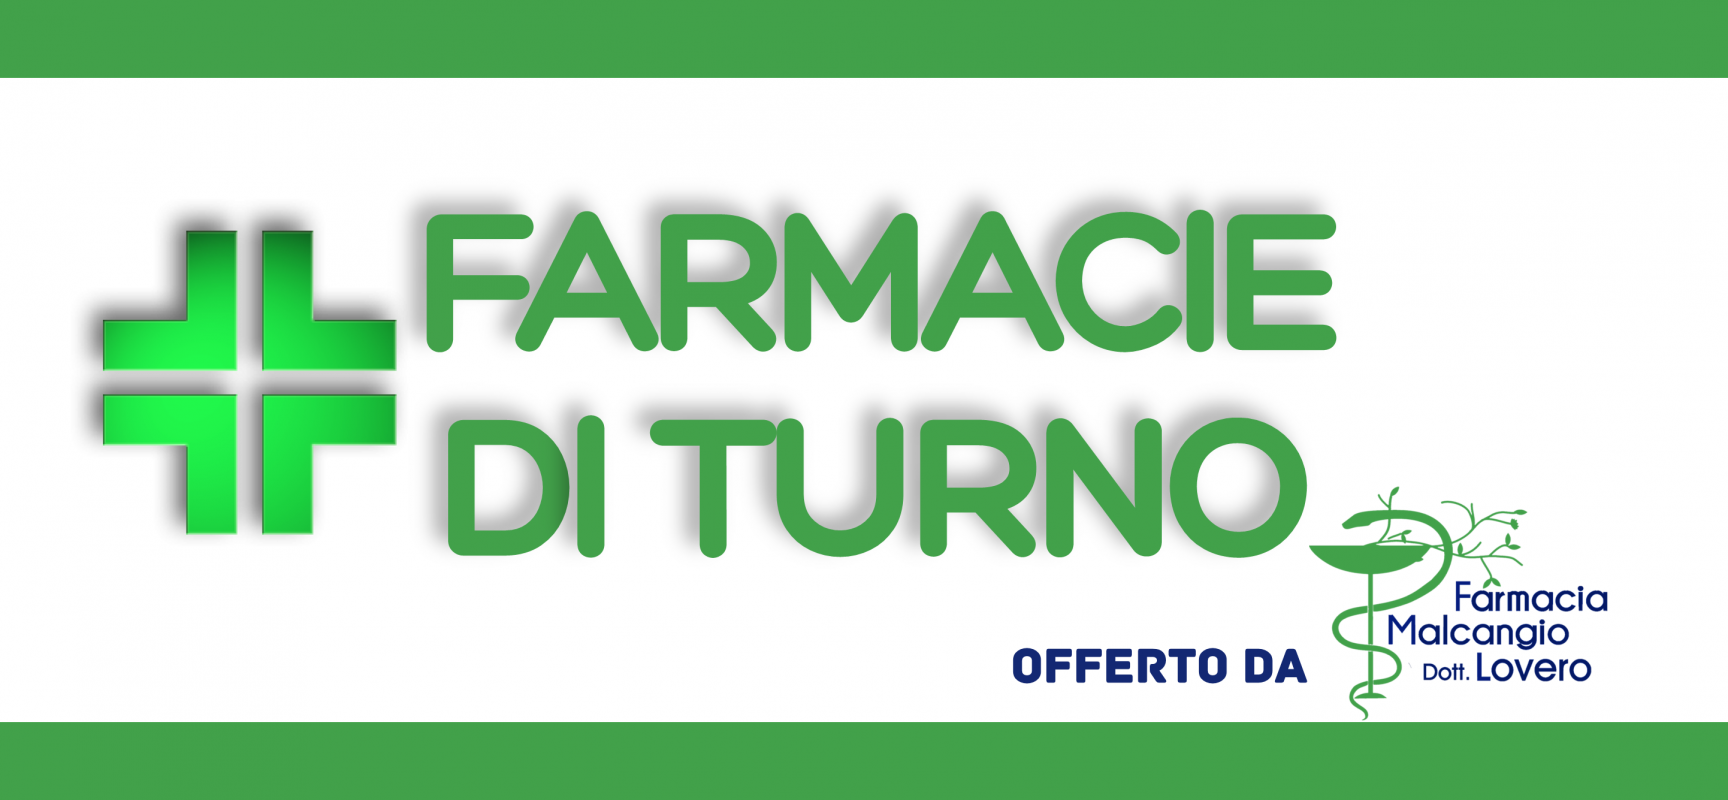 Farmacie di turno dal 2 all'8 novembre